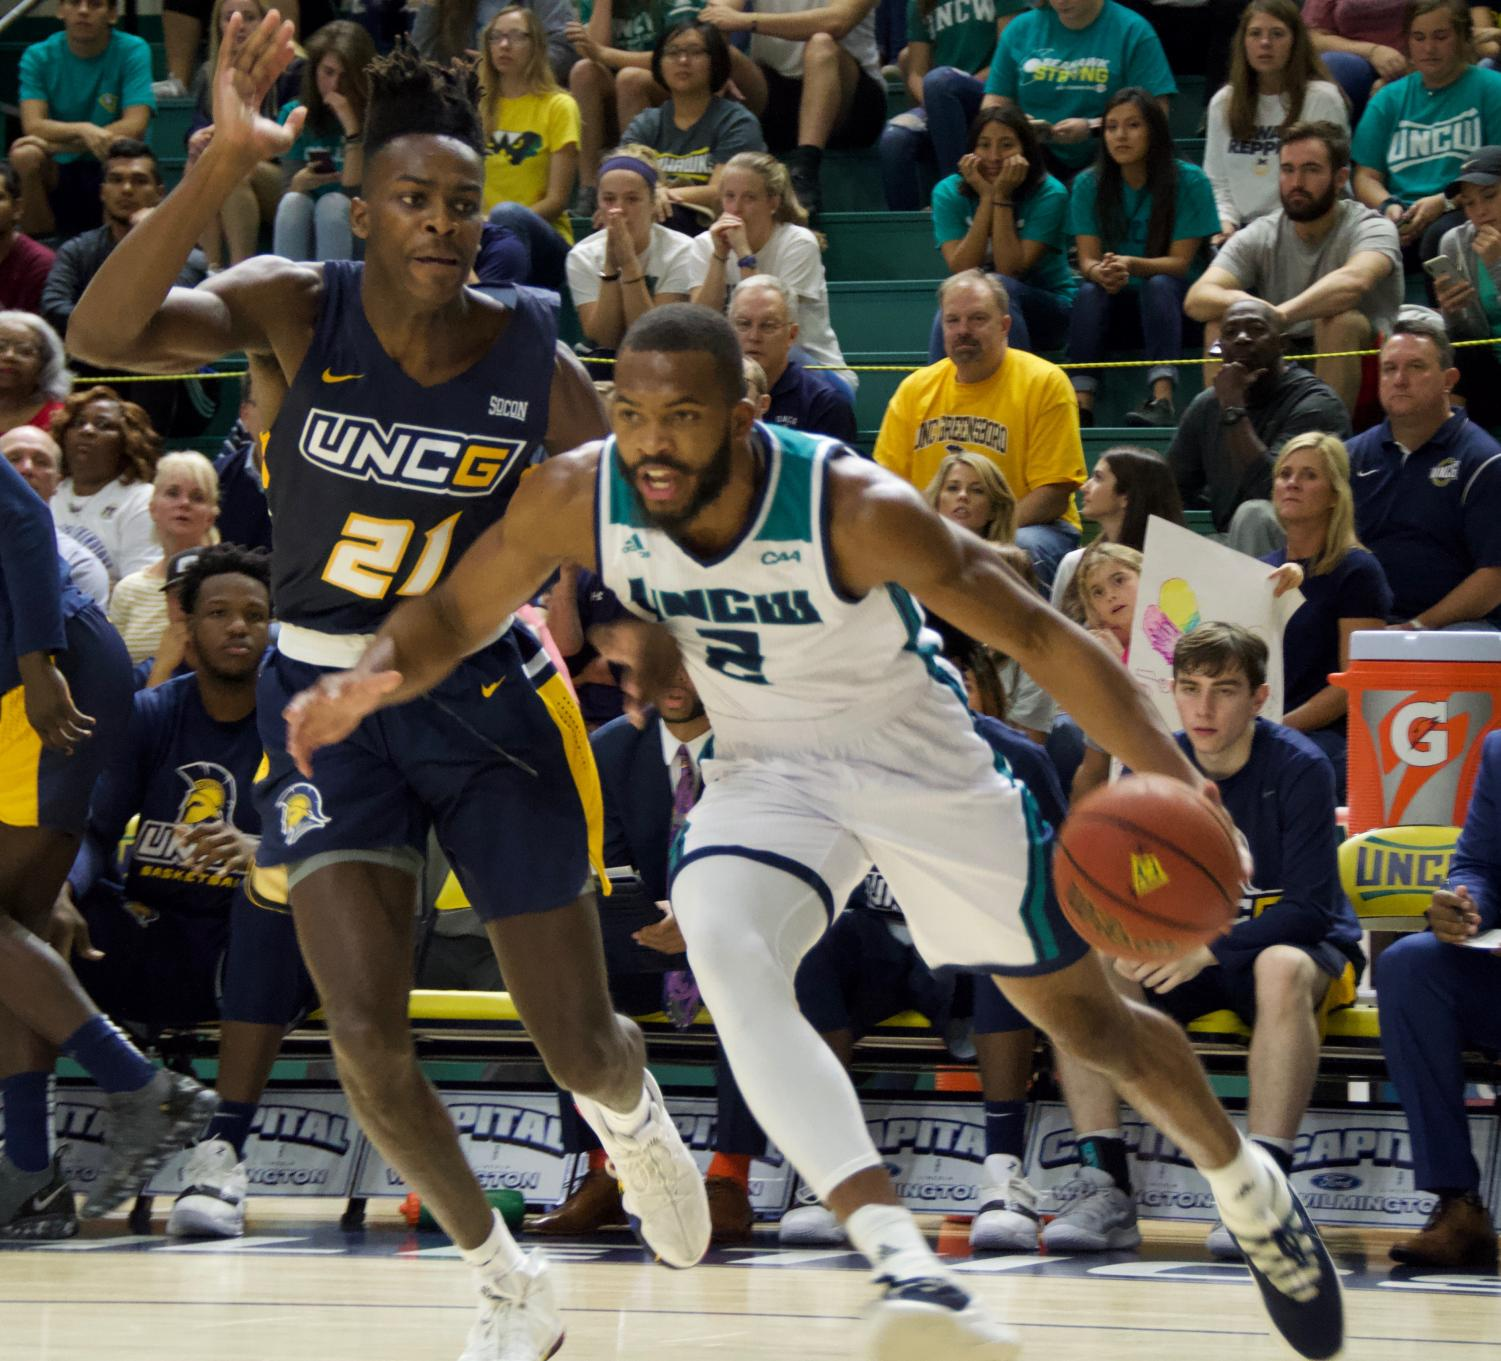 Jeantal Cylla (2) dribbles in for a layup during UNCW's Tuesday night game v.s. UNC Greensboro